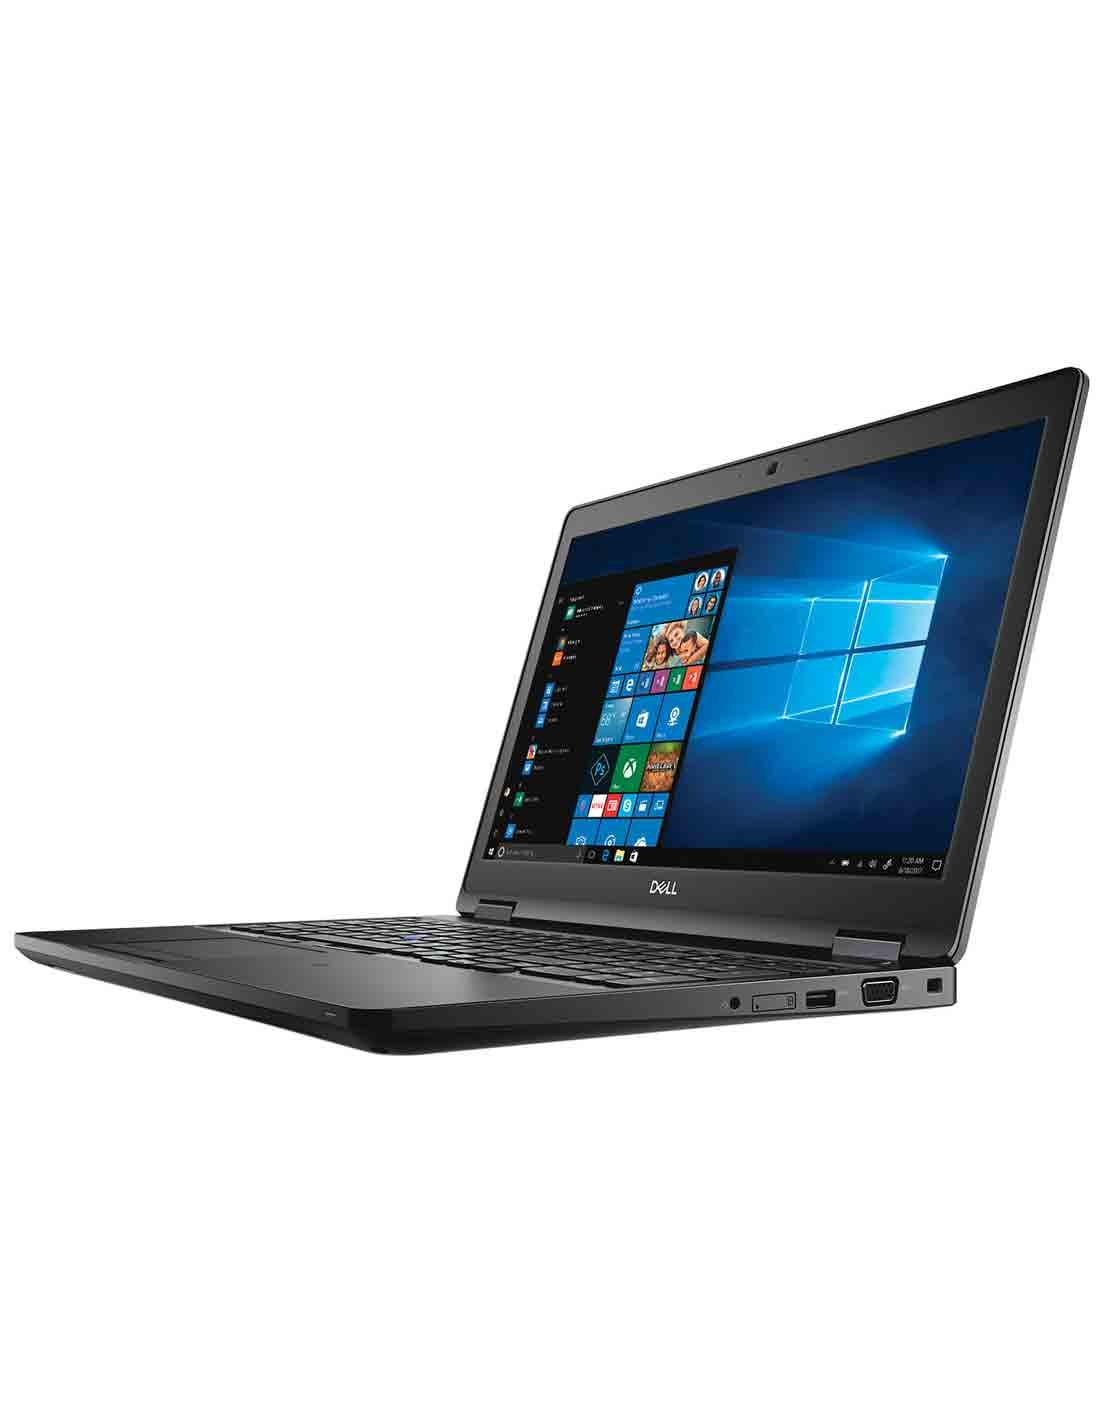 Dell Latitude 5590 Laptop at the cheapest price and fast free delivery in Dubai, UAE